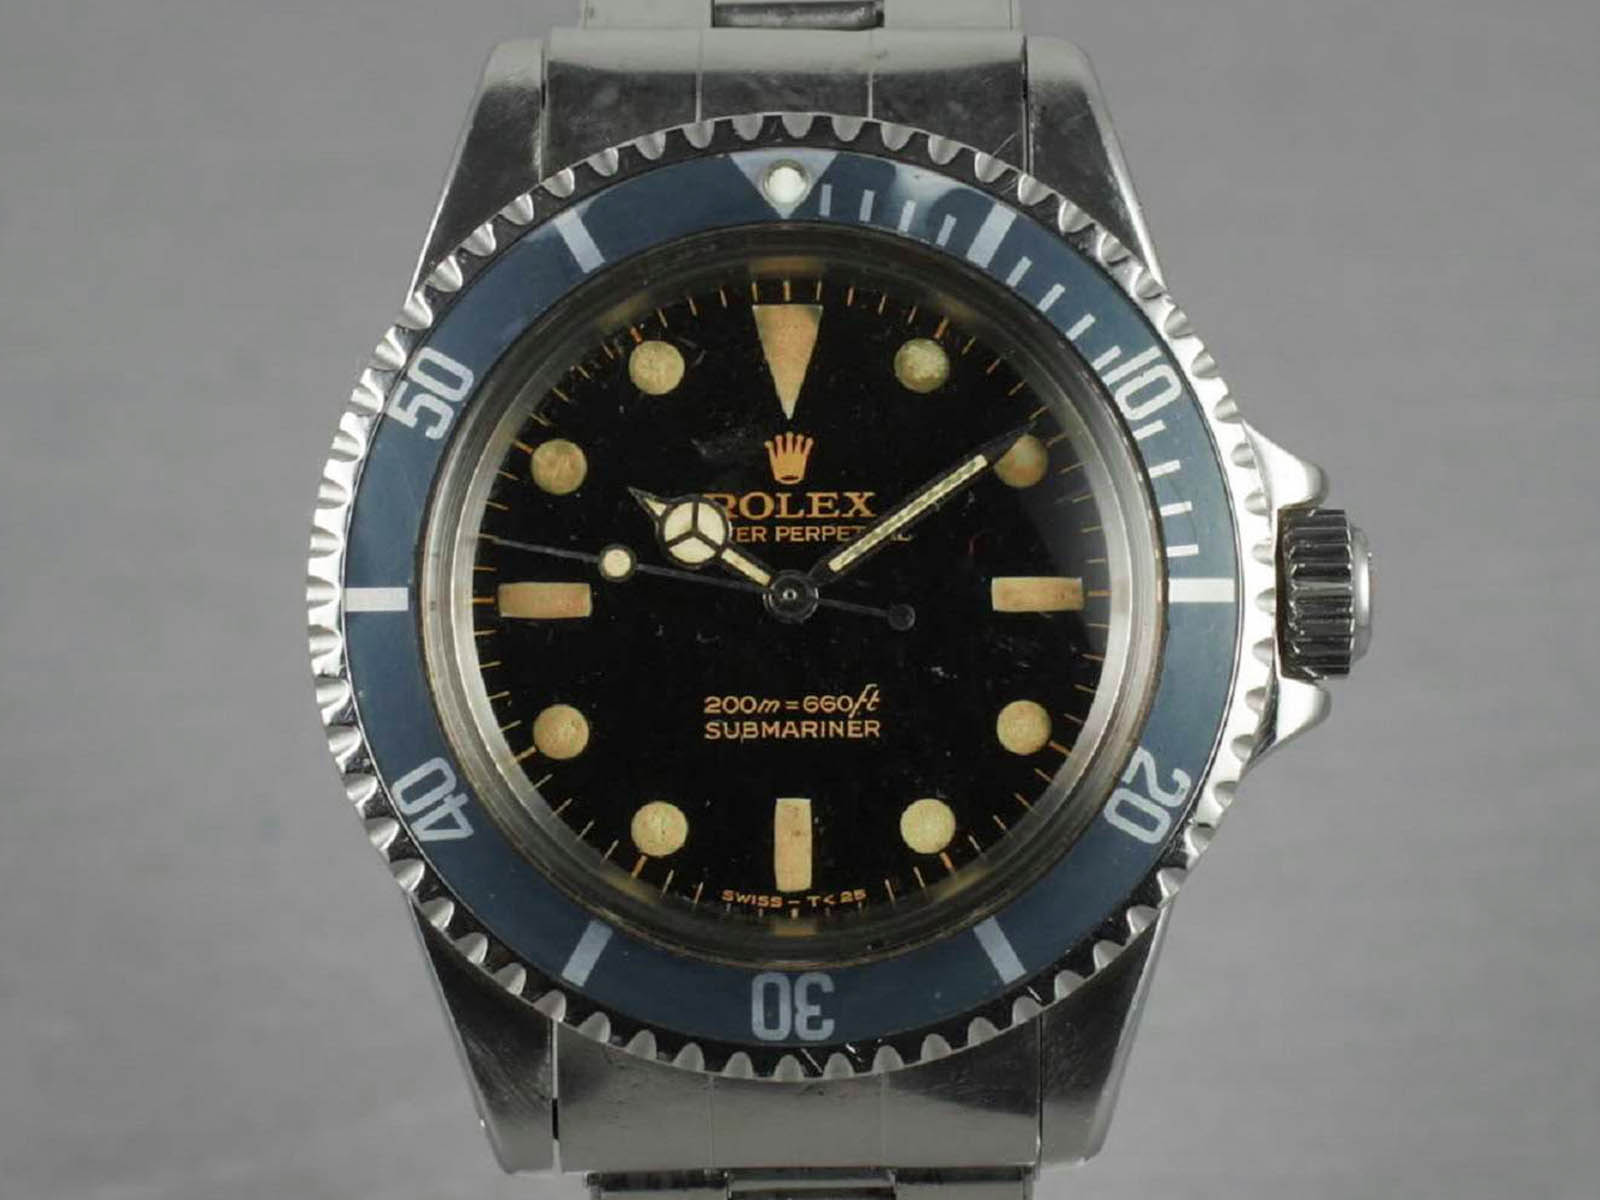 5513-rolex-submariner-bart-simpson-1.jpg